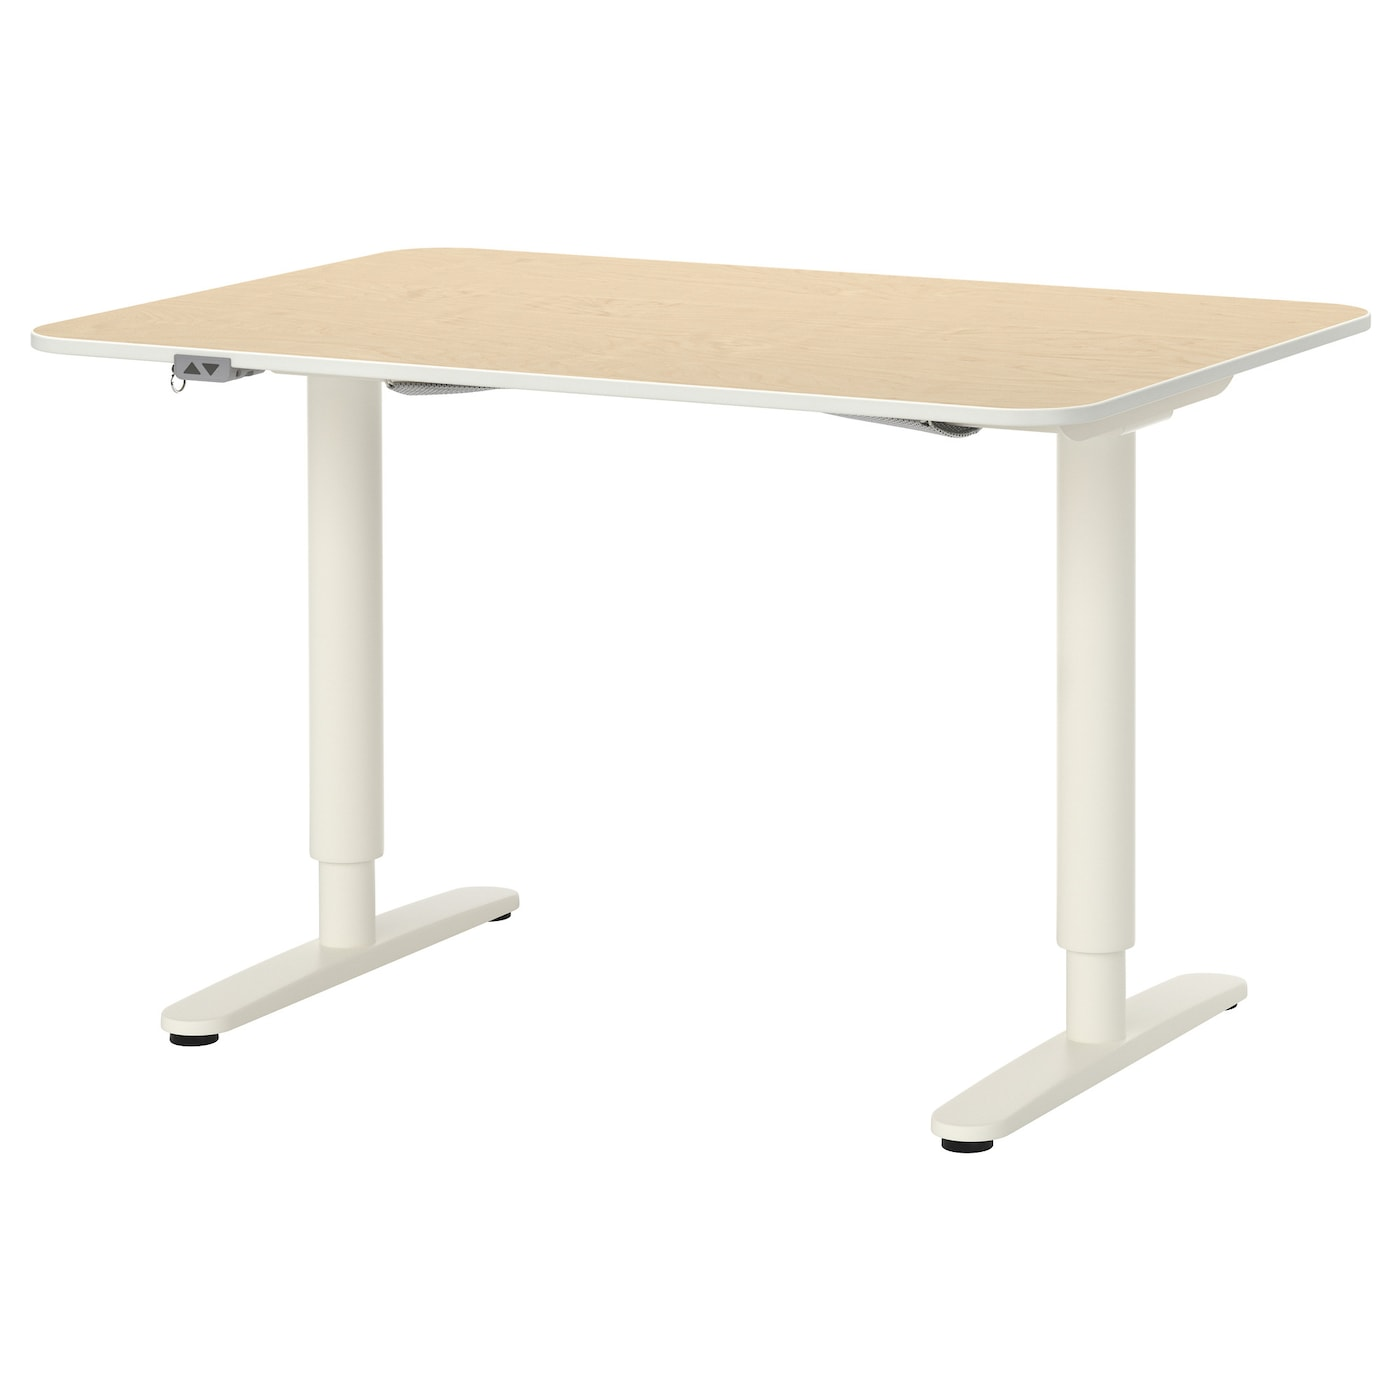 ikea bekant desk sit stand 10 year guarantee read about the terms in